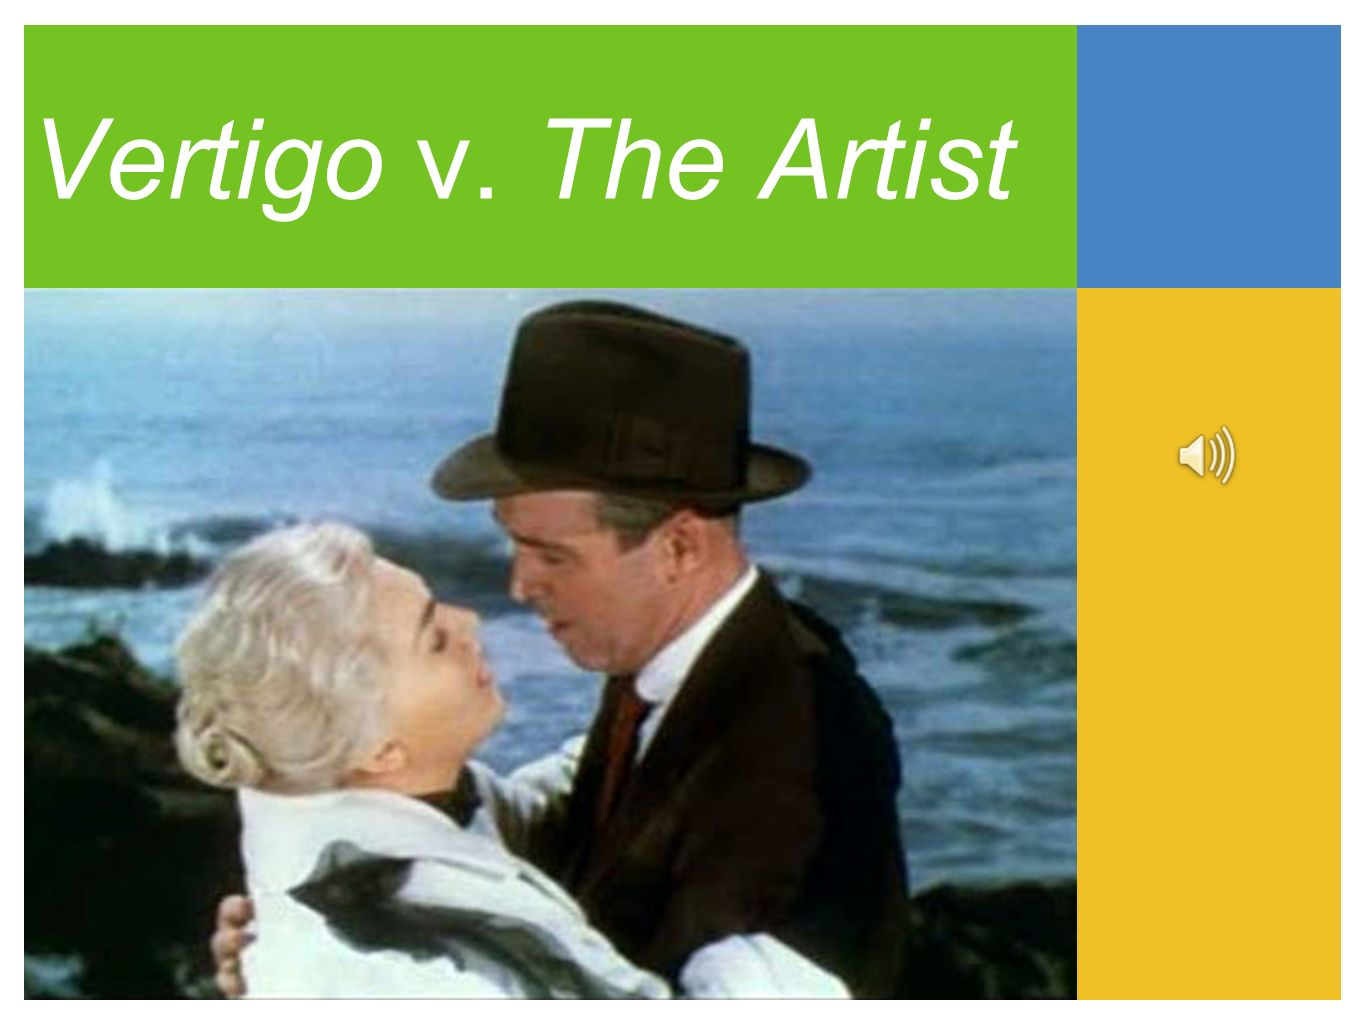 Vertigo v. The Artist